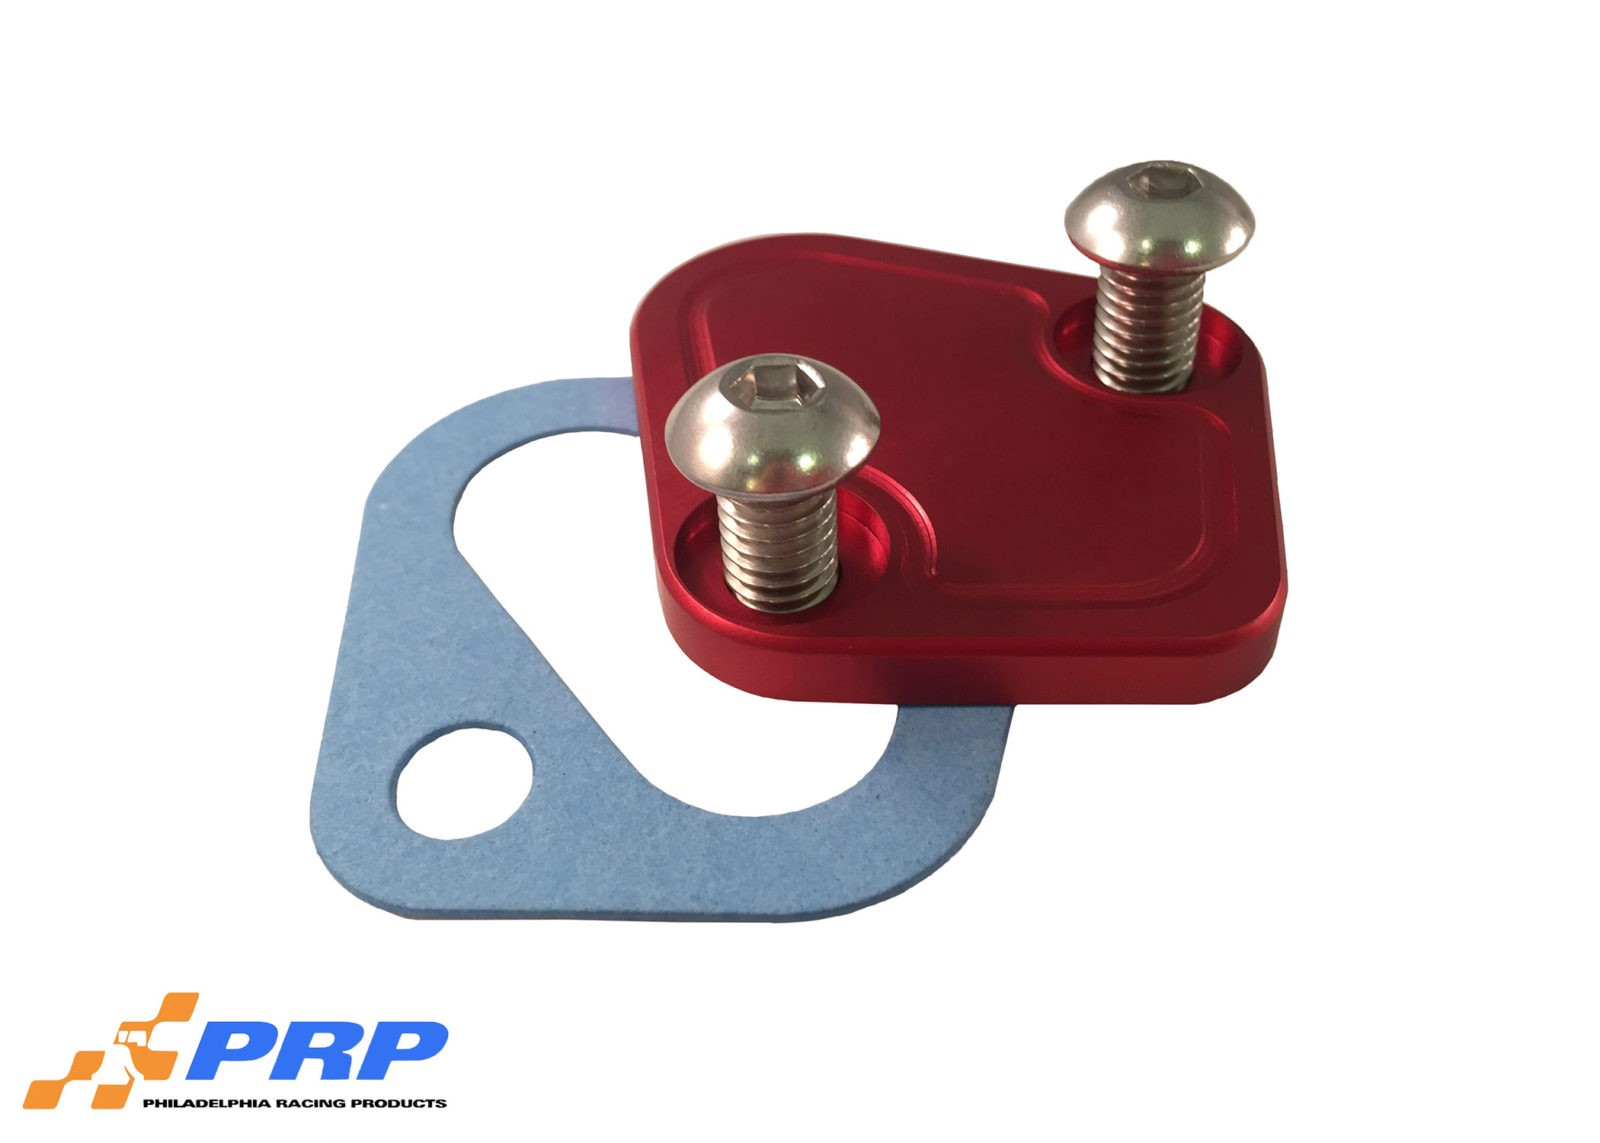 Red BBC Fuel Pump Block-off Plate made by PRP Racing Products